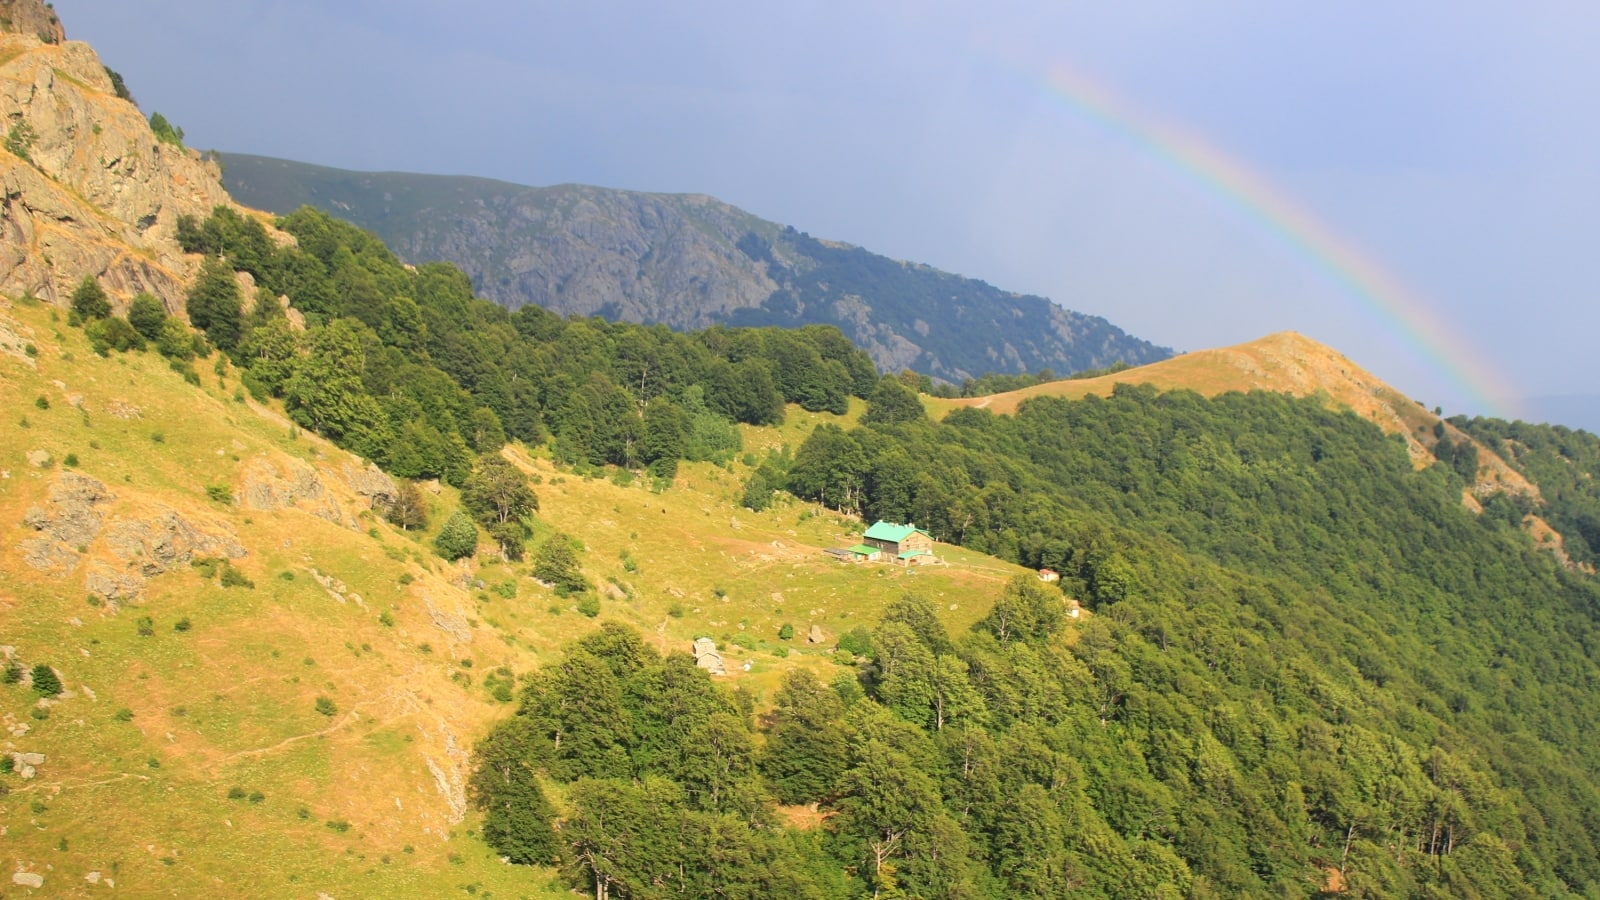 Dzhendema protected area - photo: Central Balkan National Park